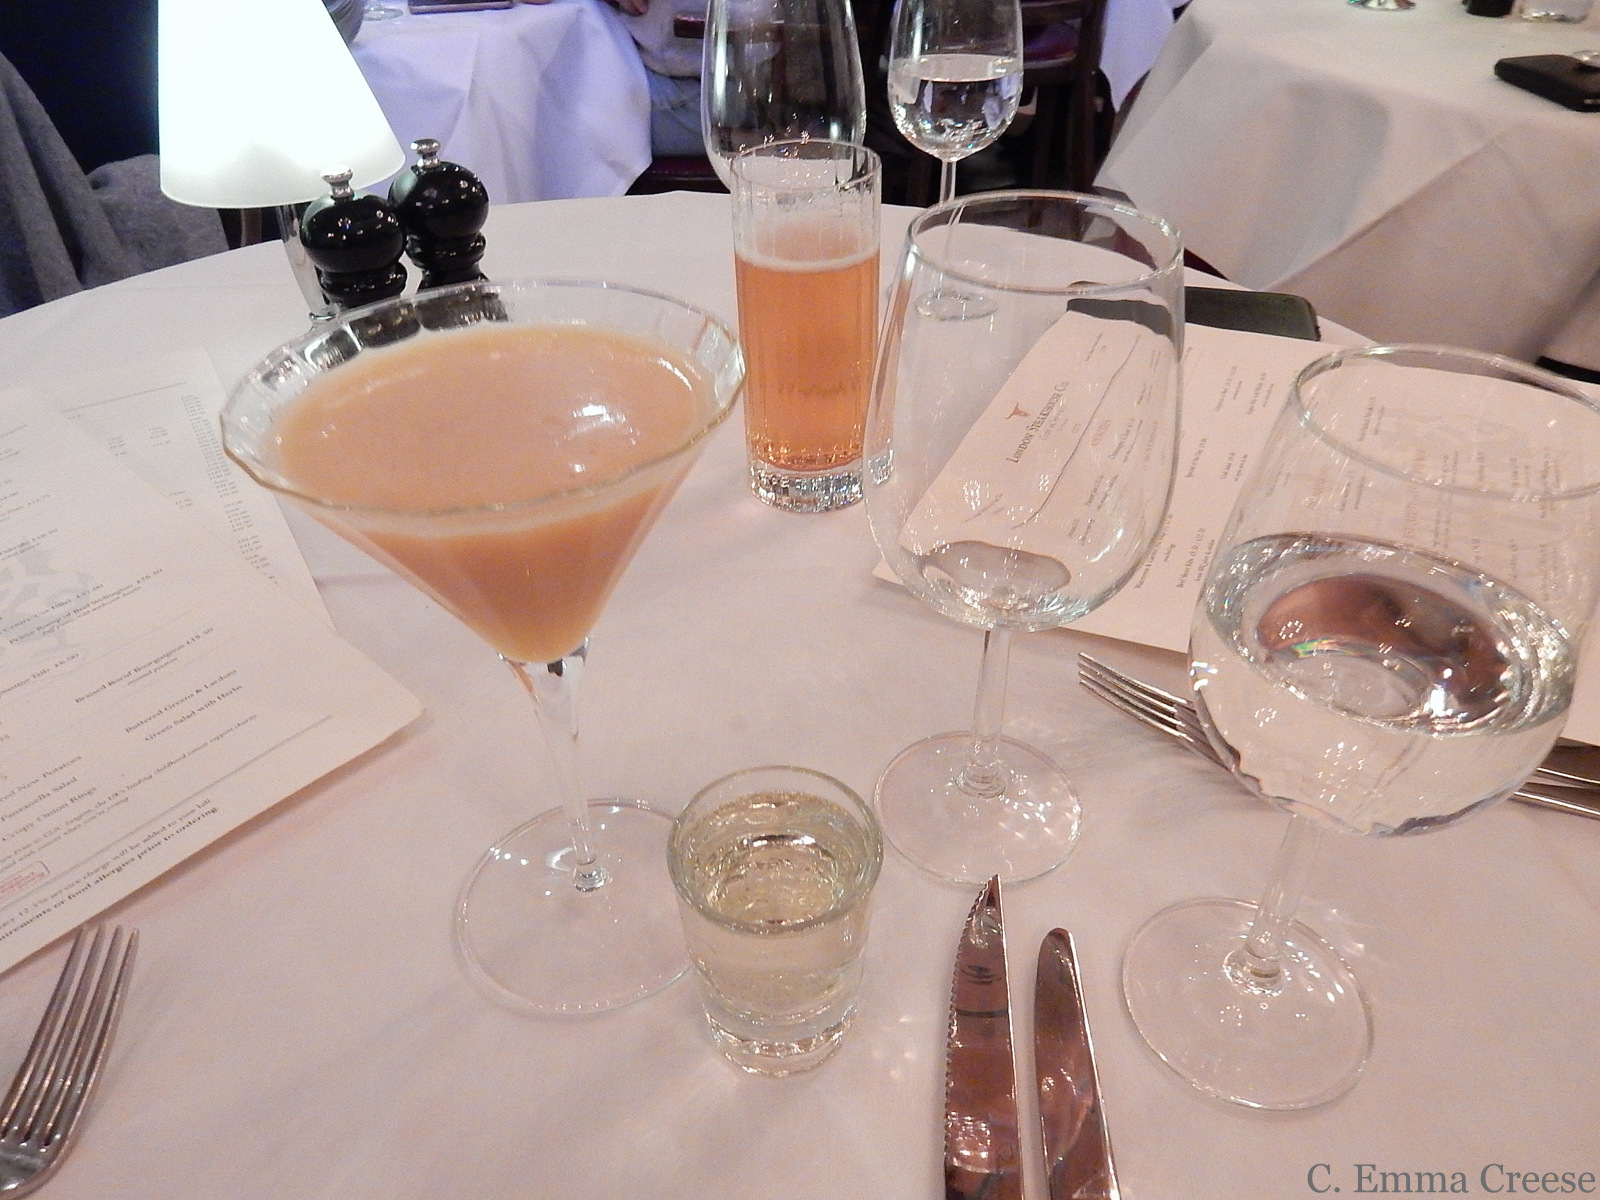 Marco Pierre White Steakhouse Co. City Restaurant Review Adventures of a London Kiwi